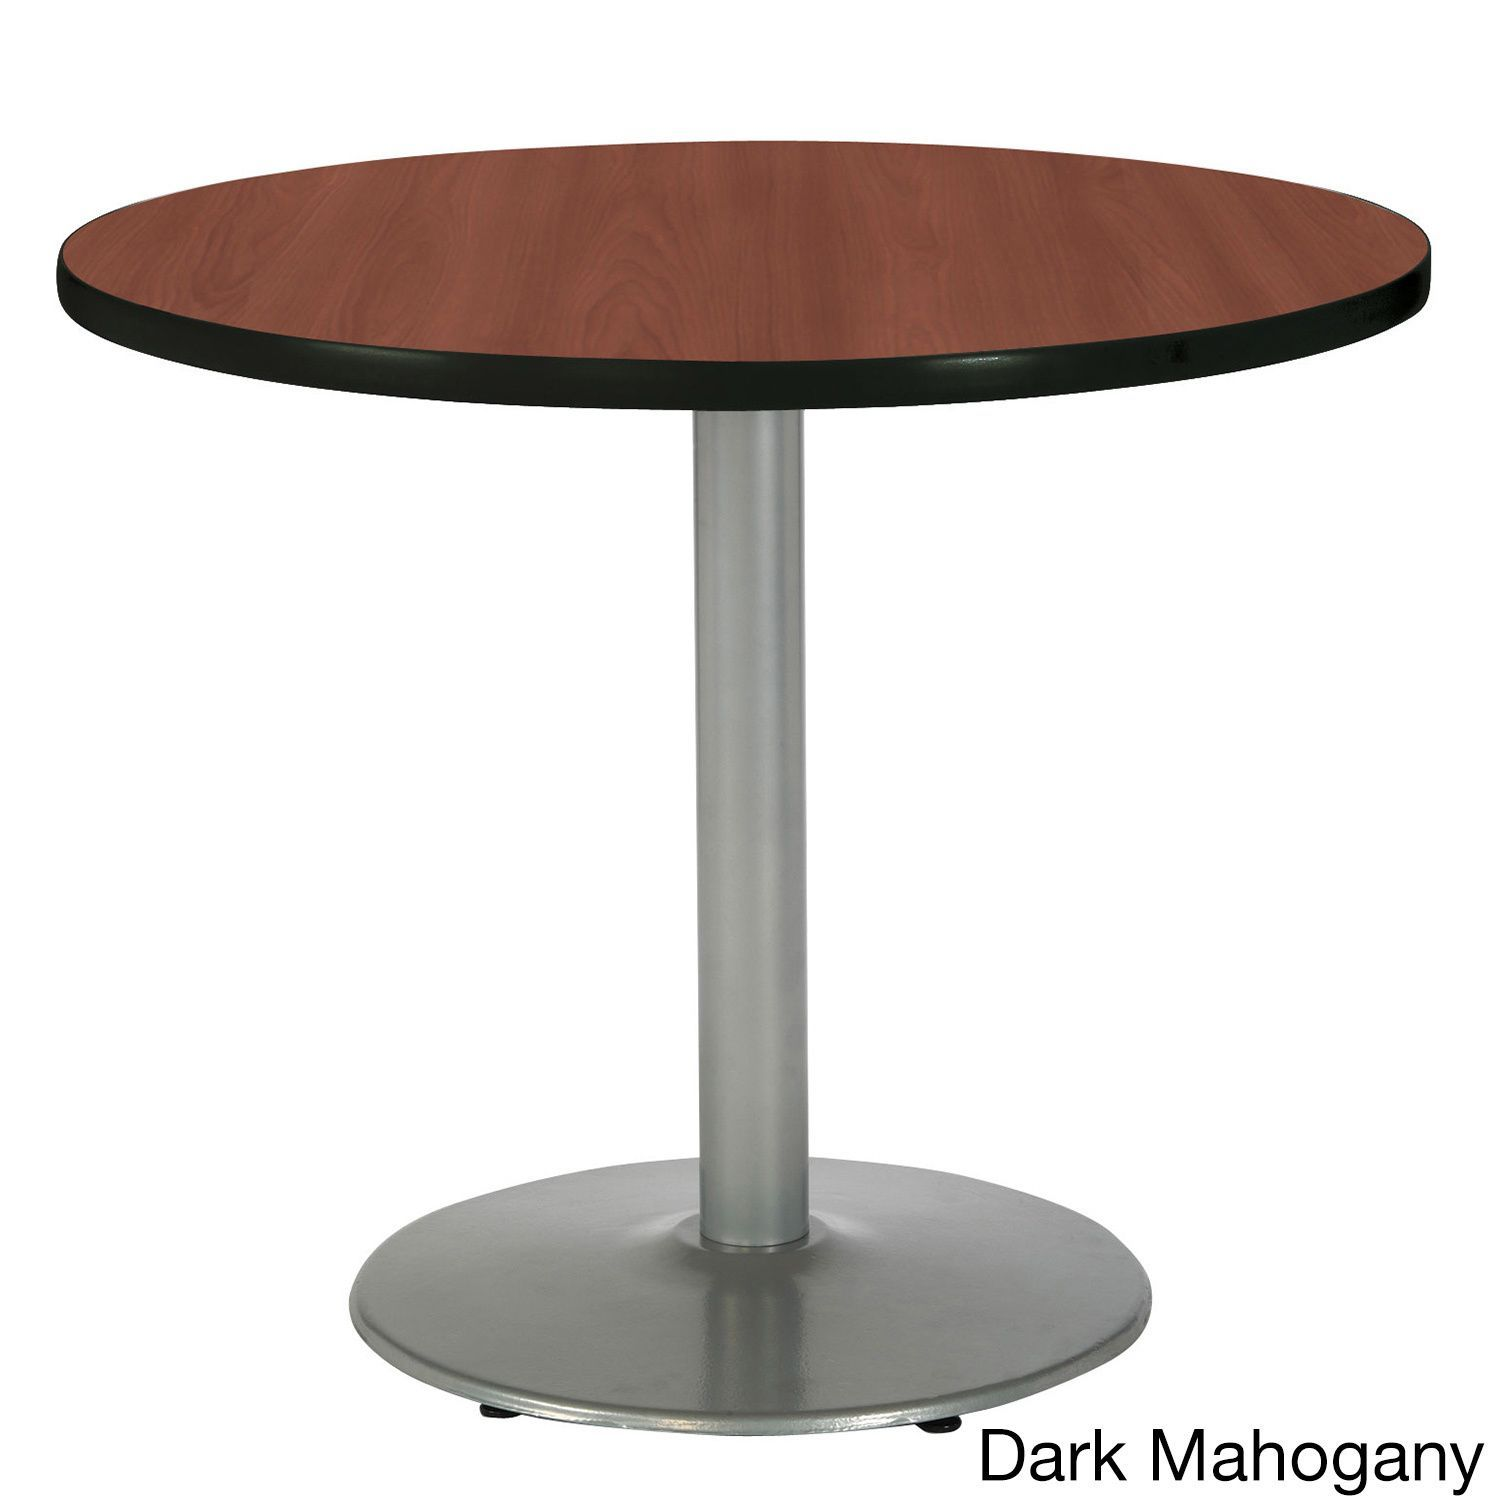 Inch Round Pedestal Table Round Silver Base Products - 42 inch round office table